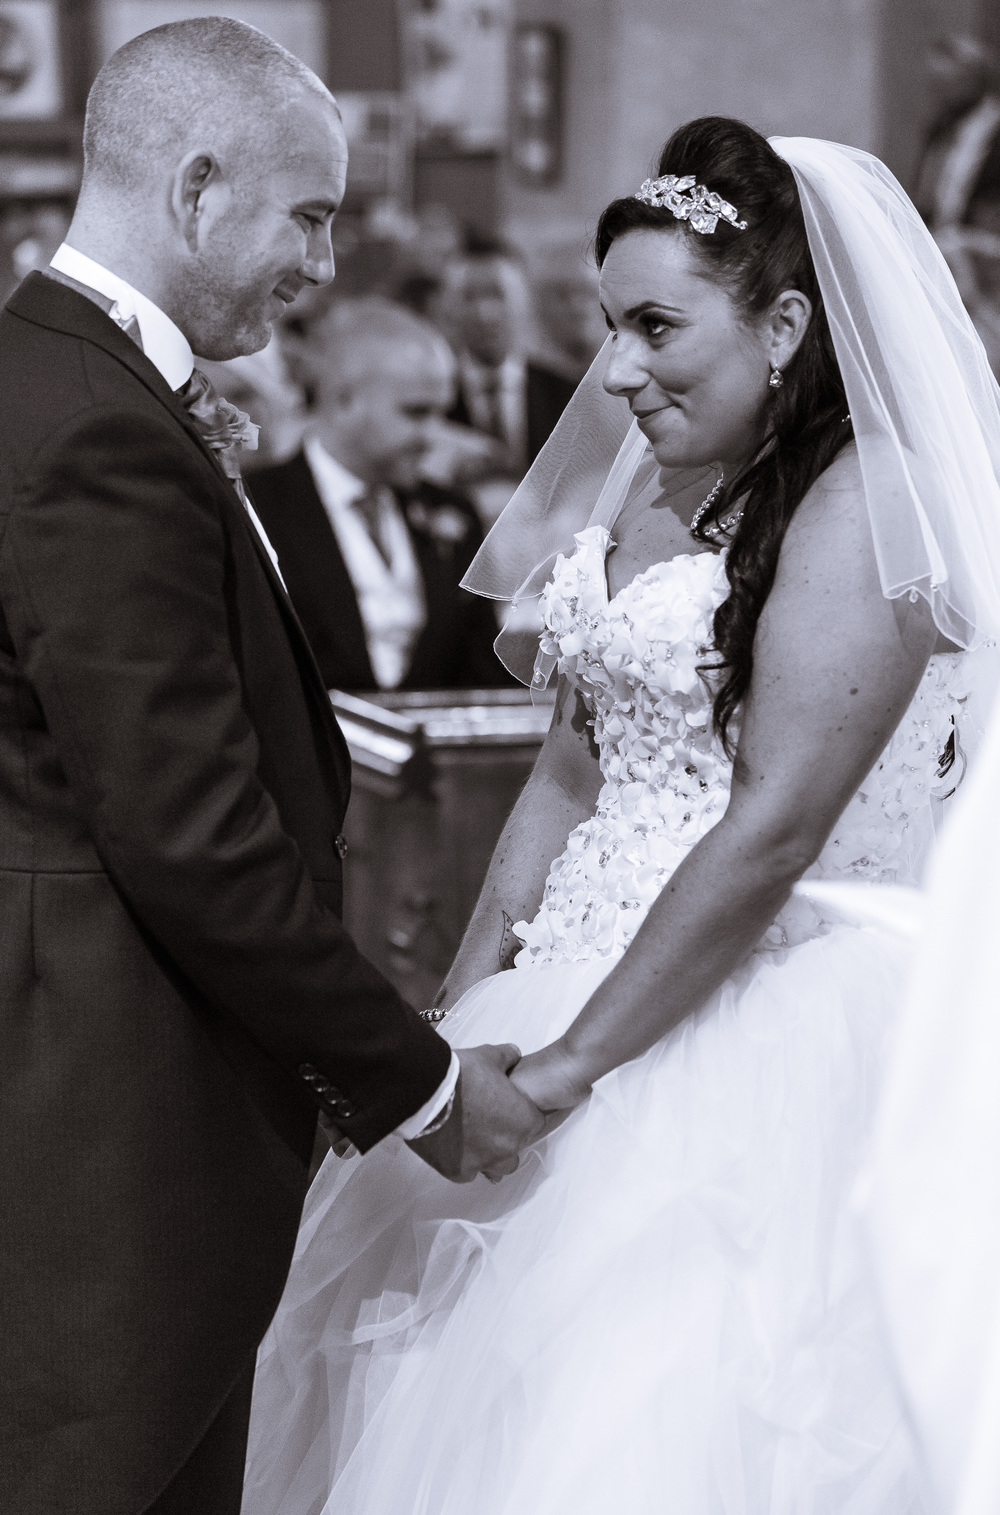 Capturing the emotion is what i do best! I love capturing the quick smiles and nervous from the bride and groom on their wedding day, it really adds to the photographs